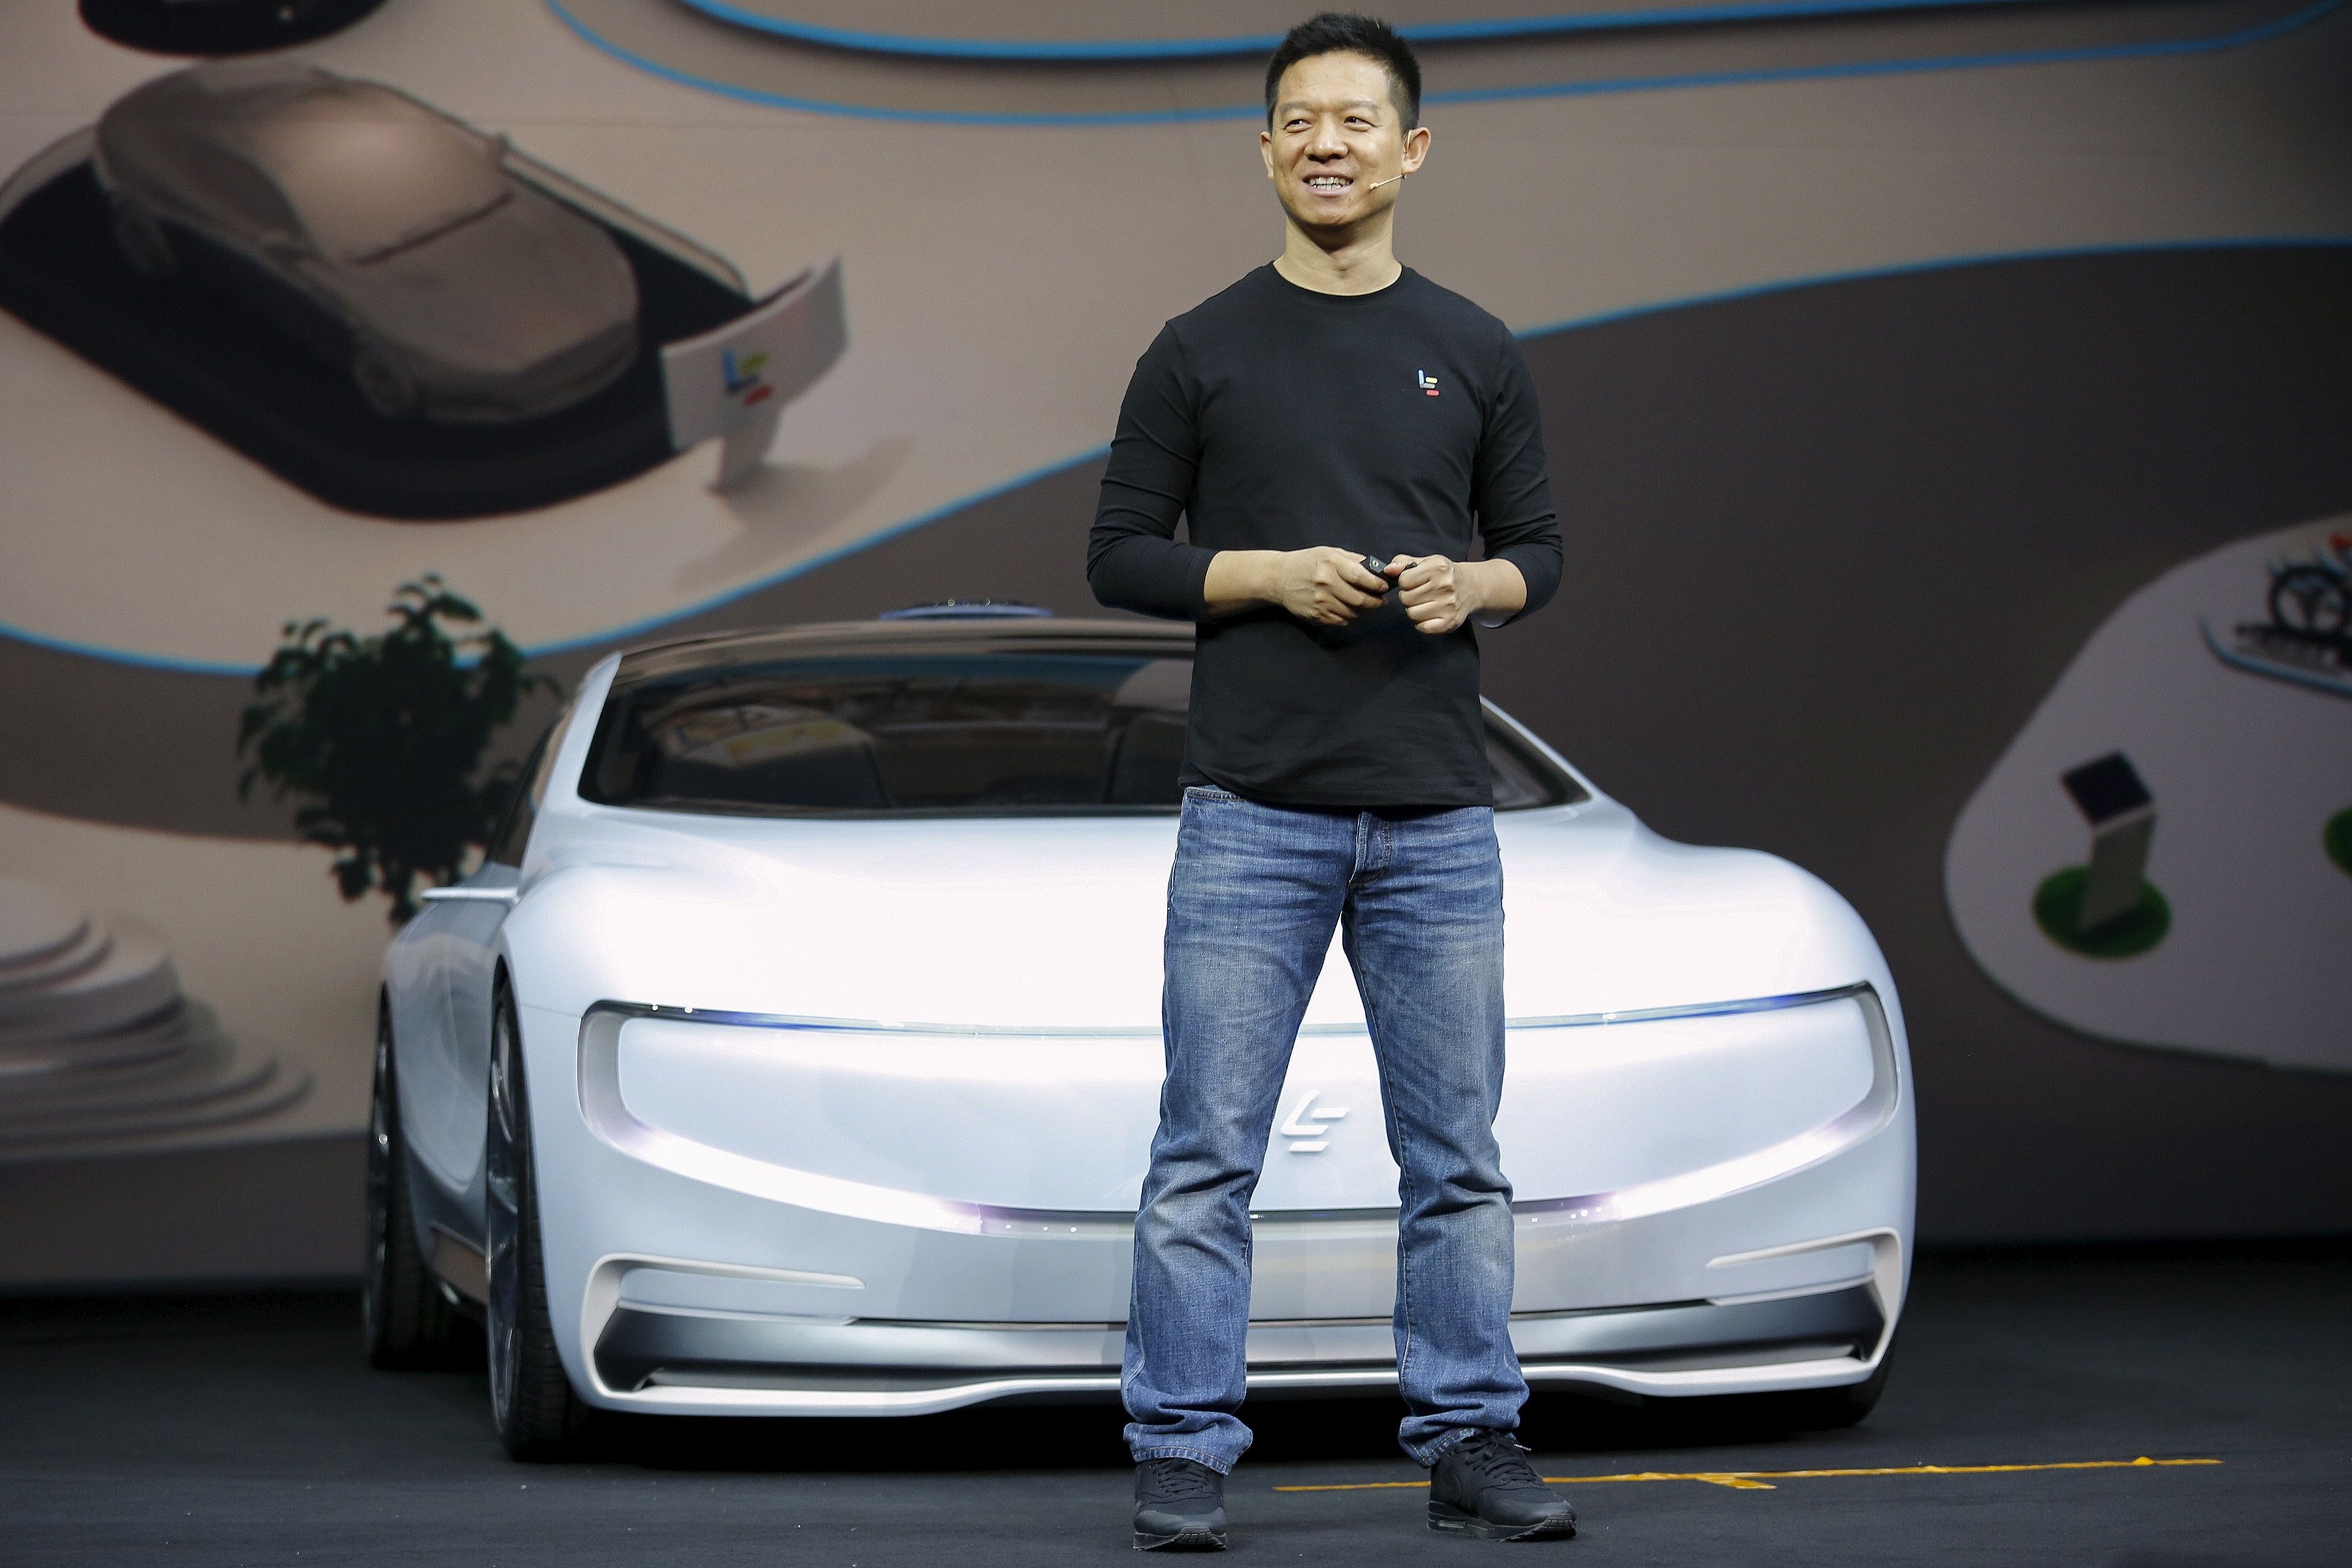 """Jia Yueting, co-founder and head of Le Holdings Co Ltd, also known as LeEco and formerly as LeTV, unveils an all-electric battery """"concept"""" car called LeSEE during a ceremony in Beijing, China April 20, 2016. REUTERS/Damir Sagolj"""